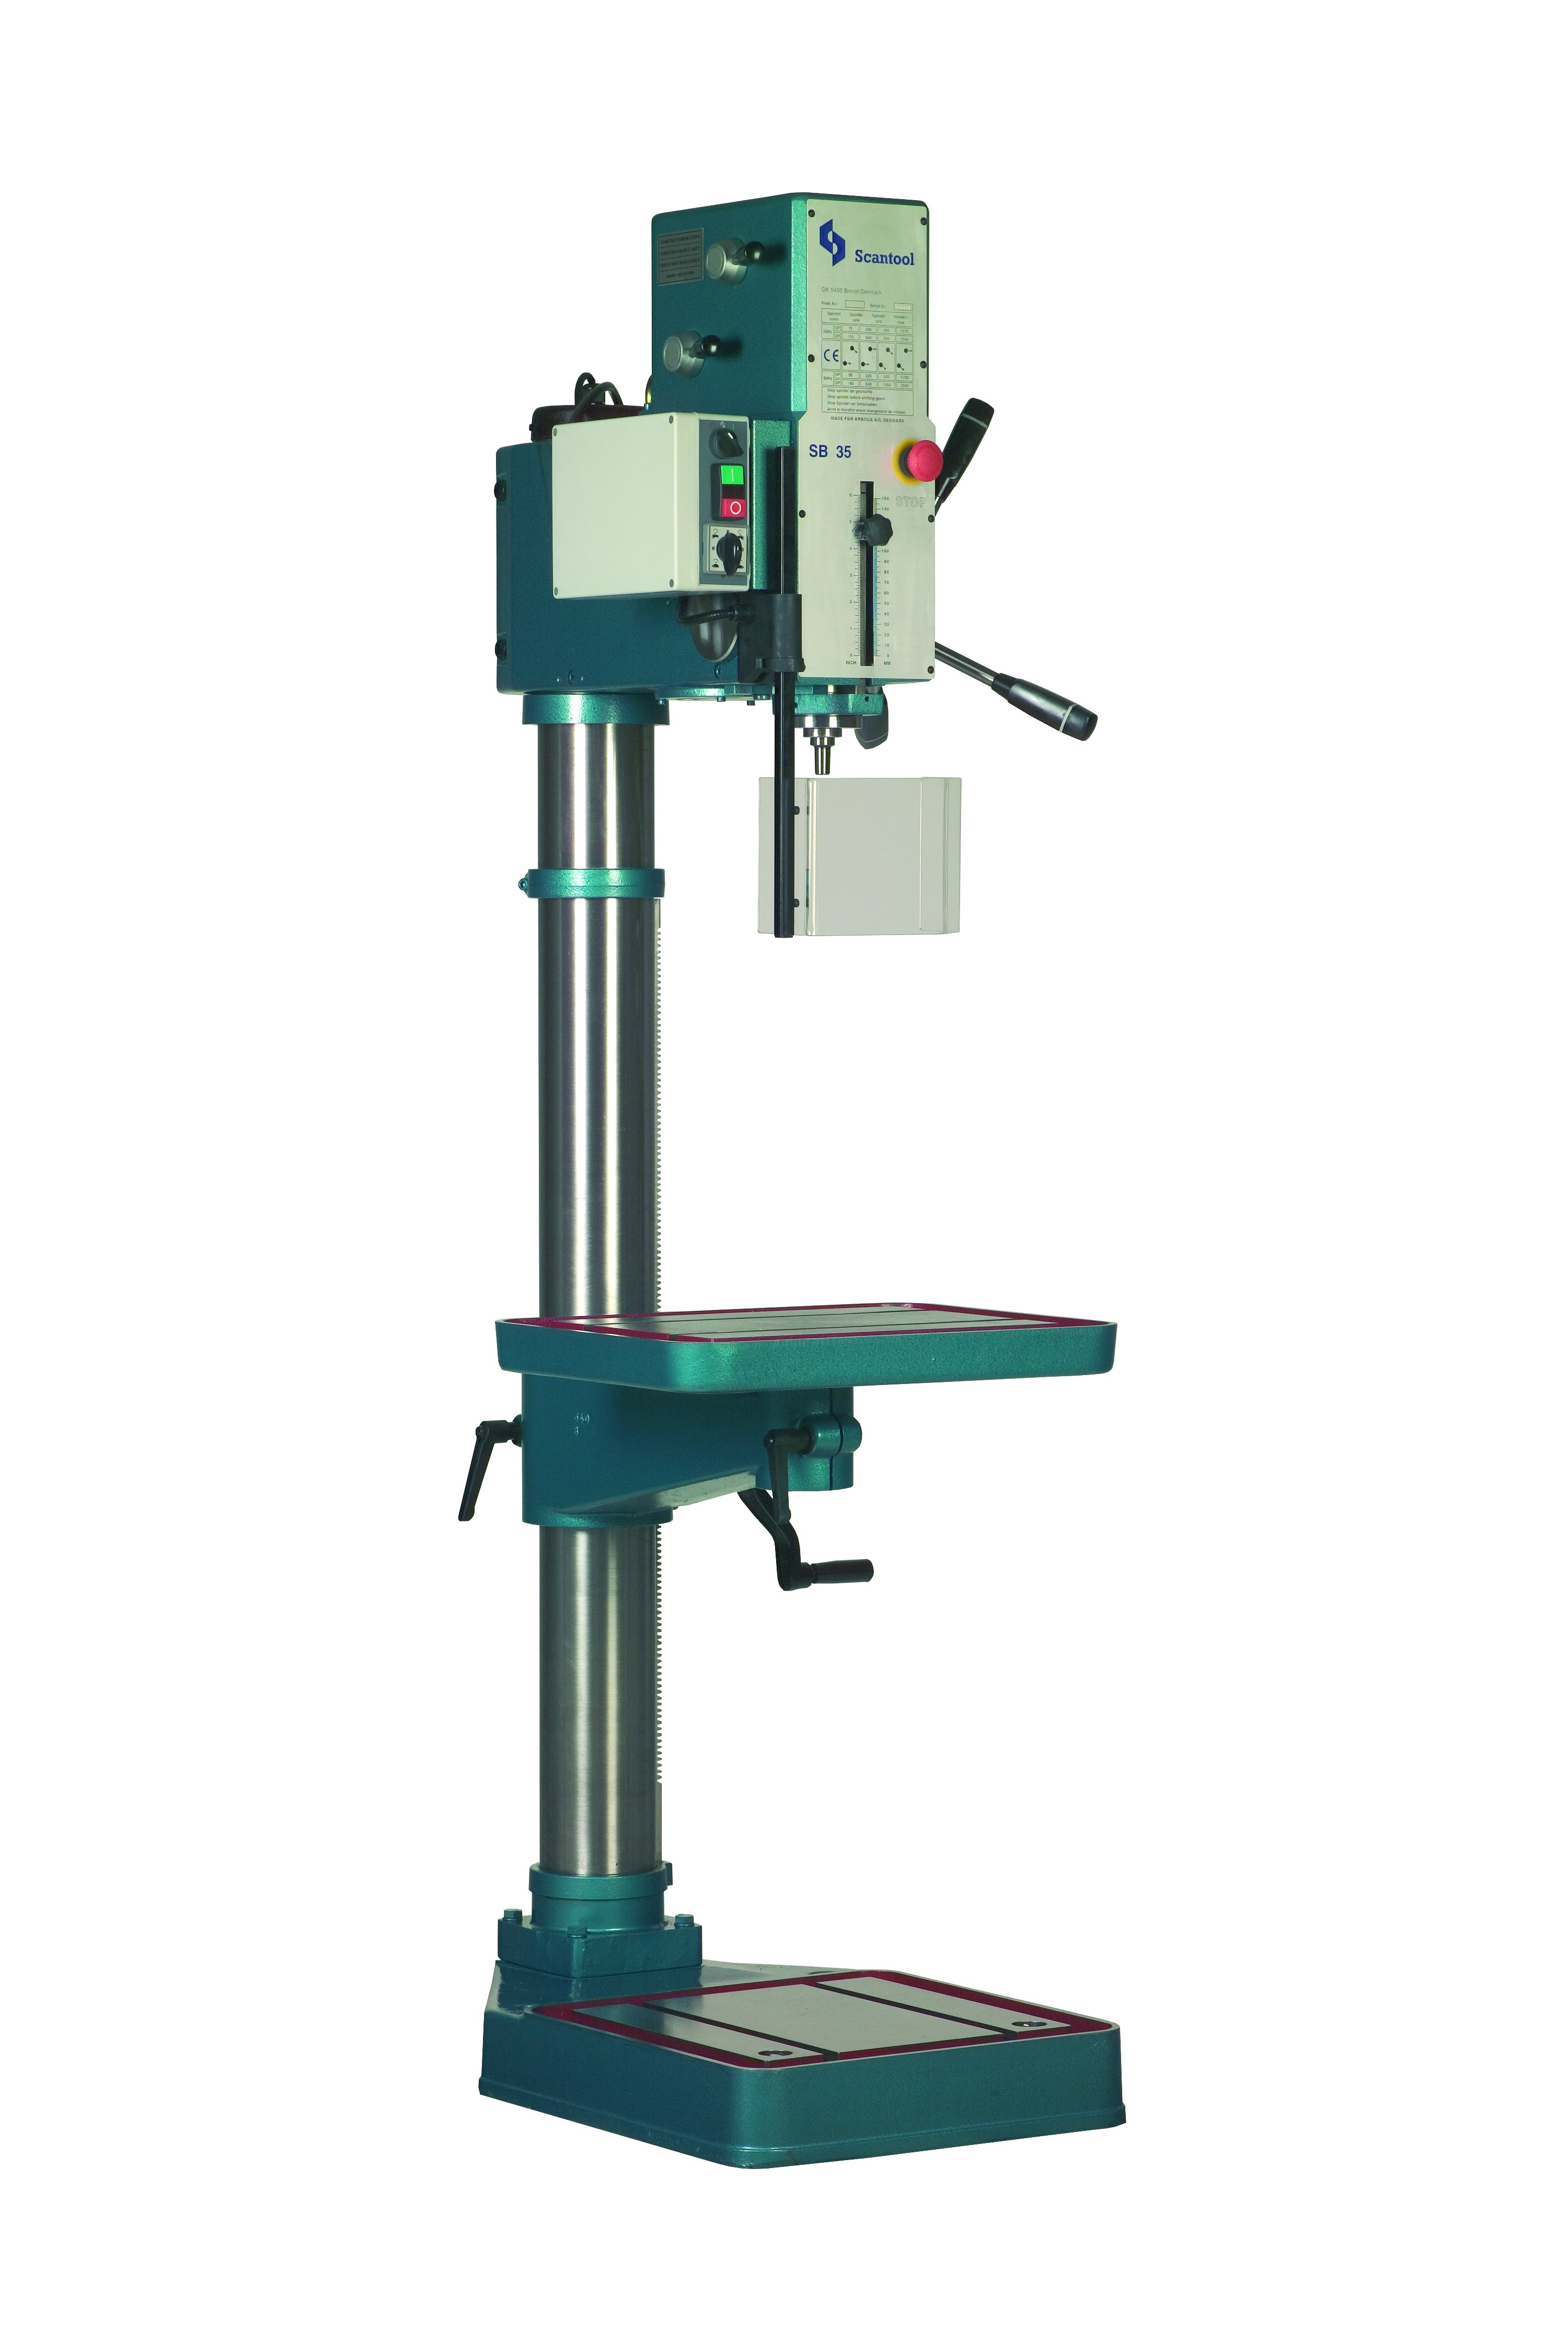 drilling machine Cheston chd-6103 10mm reversible drill machine this amazing and stylish drilling machine from cheston is a very powerful yet energy-efficient unit that comes in with a nice set of drill bits for managing small home tasks.